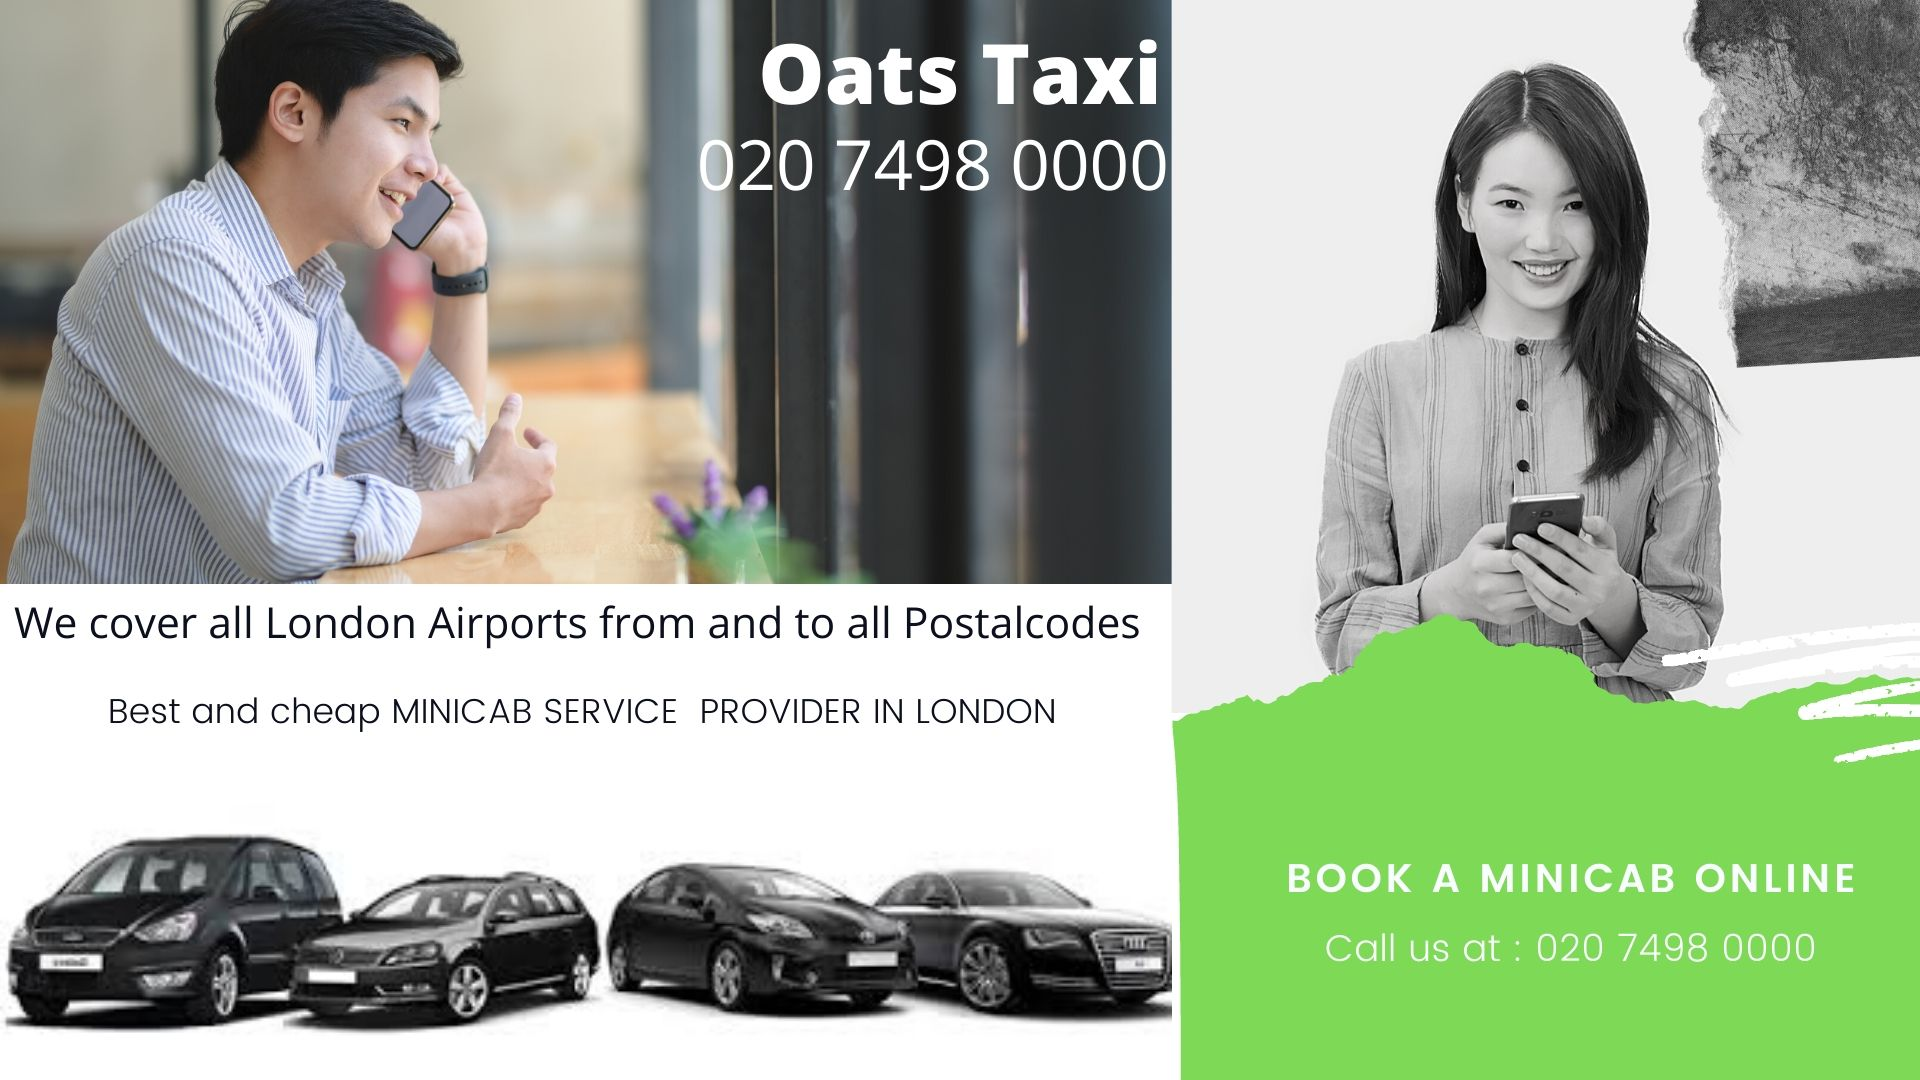 Minicab Office Near LOUVAINE ROAD, Battersea SW11, Minicab From Battersea SW11 To Gatwick Airport